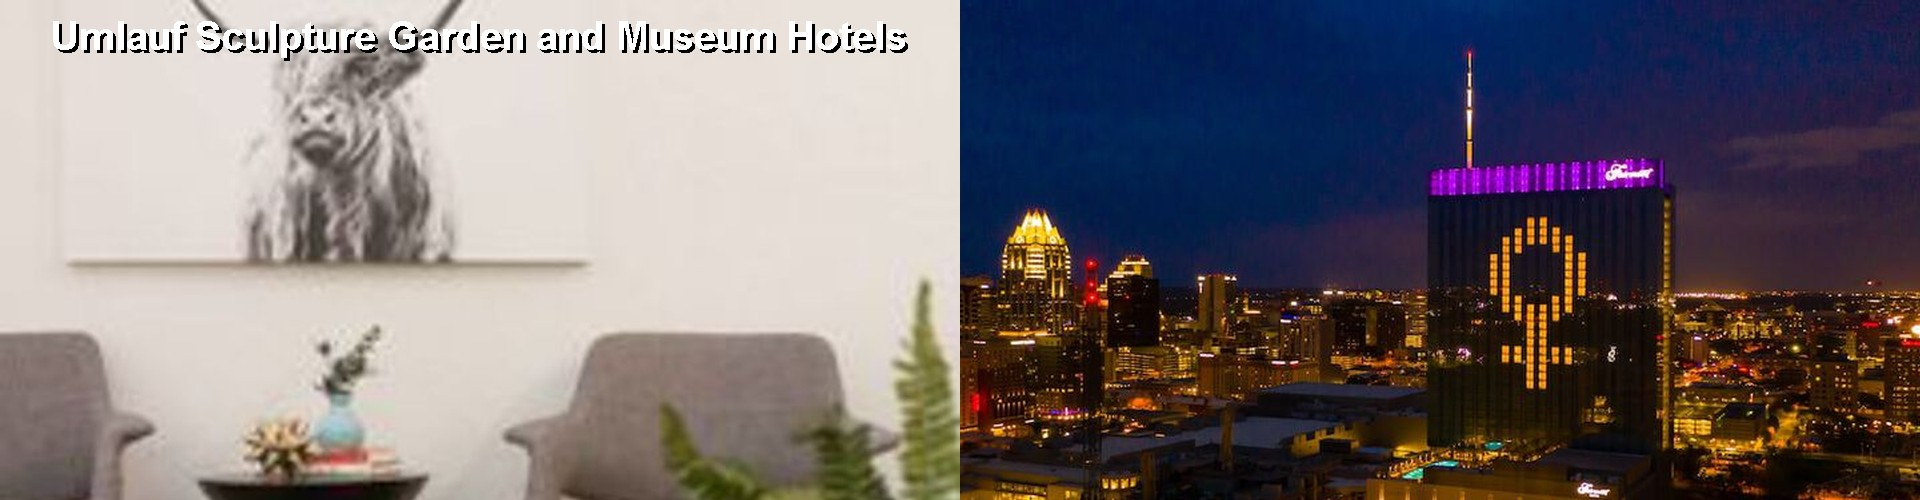 2 Best Hotels near Umlauf Sculpture Garden and Museum